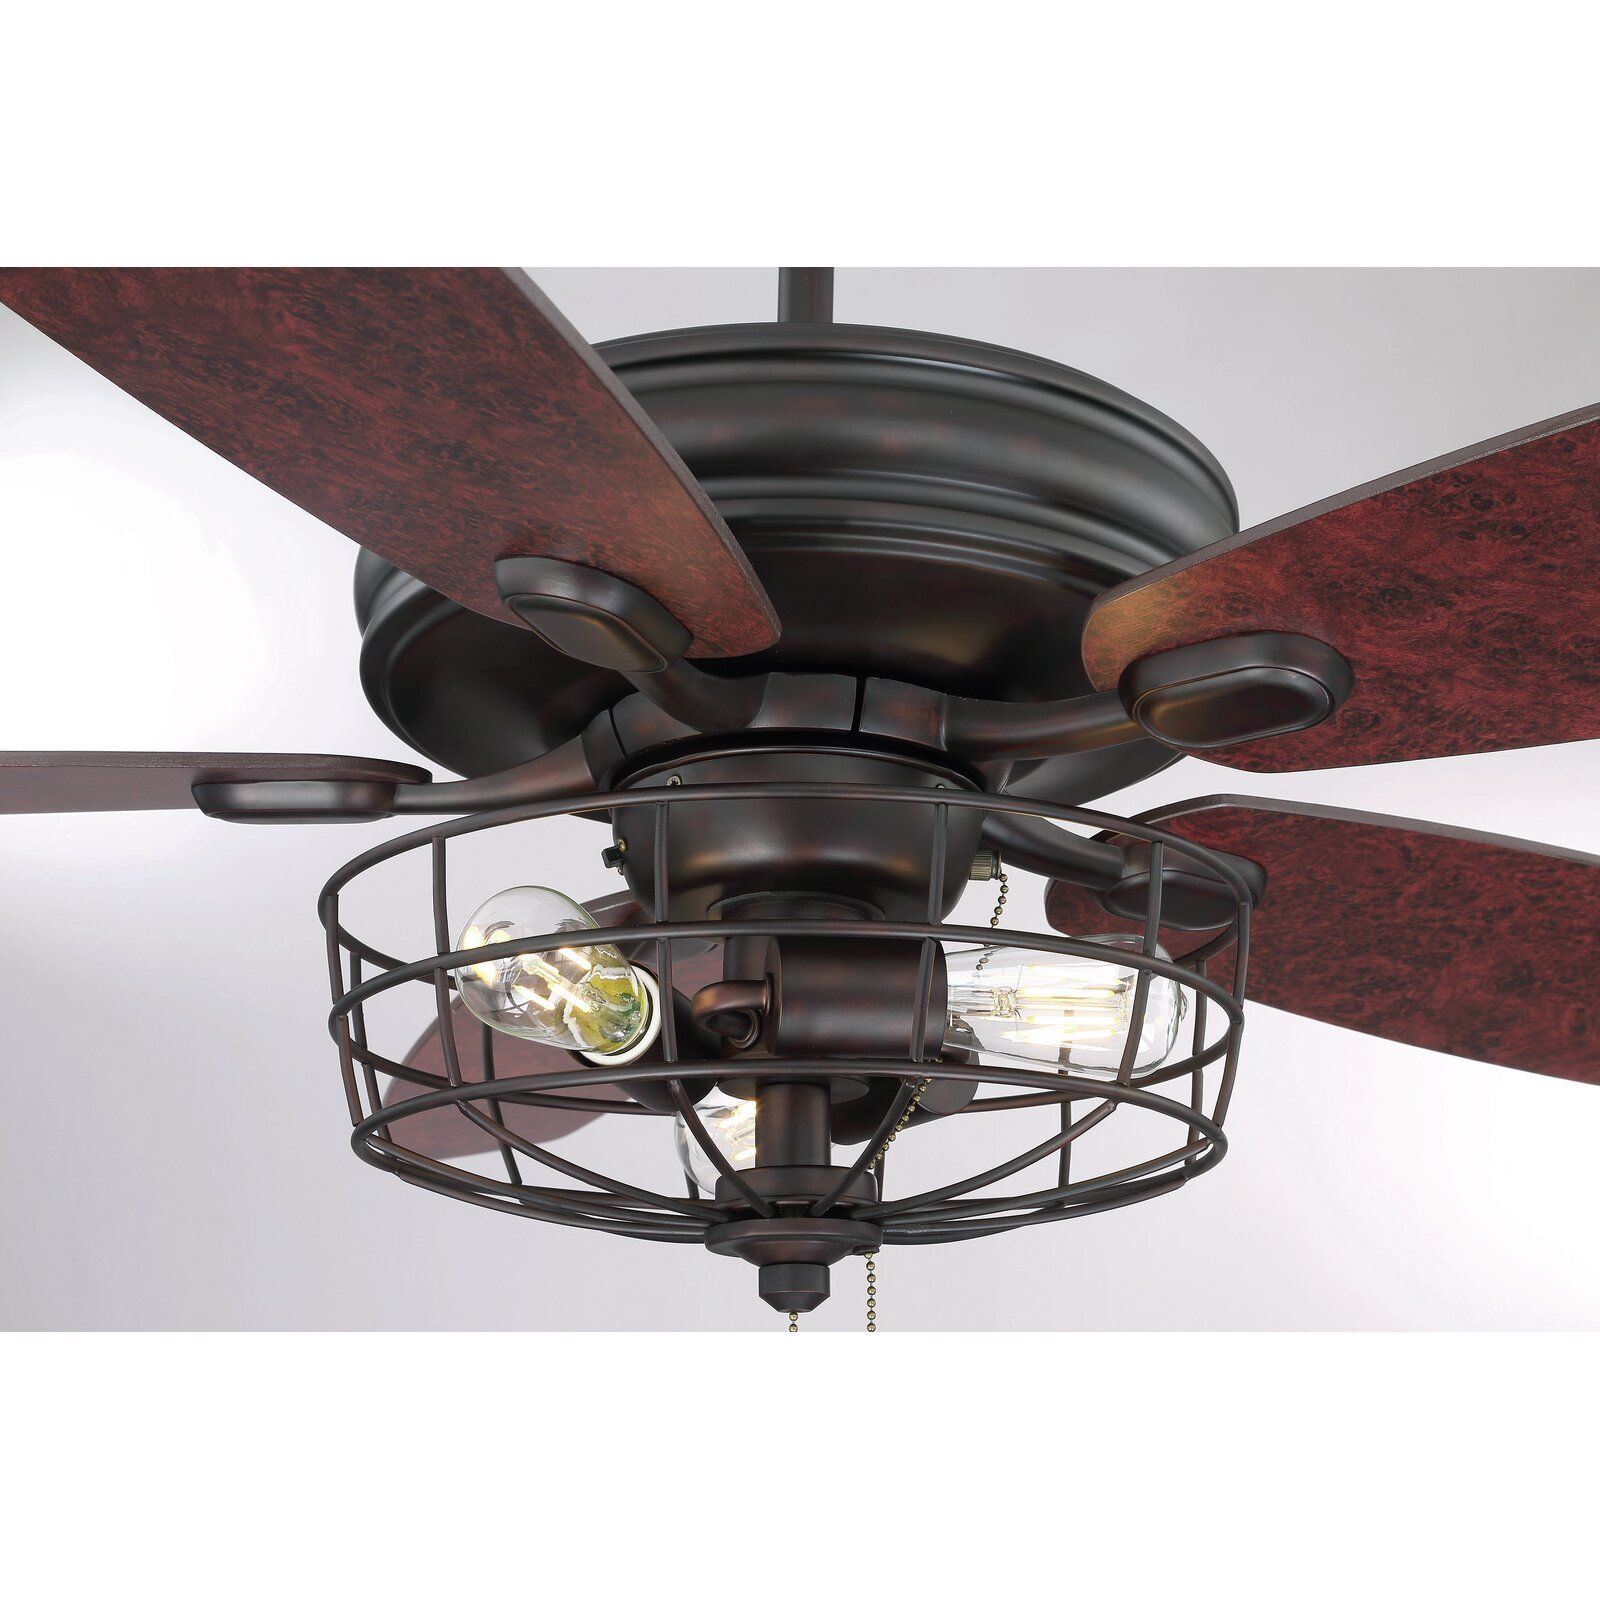 52 Glenpool 5 Blade Caged Ceiling Fan With Pull Chain And Light Kit Included Caged Ceiling Fan Ceiling Fan Light Kit Ceiling Fan